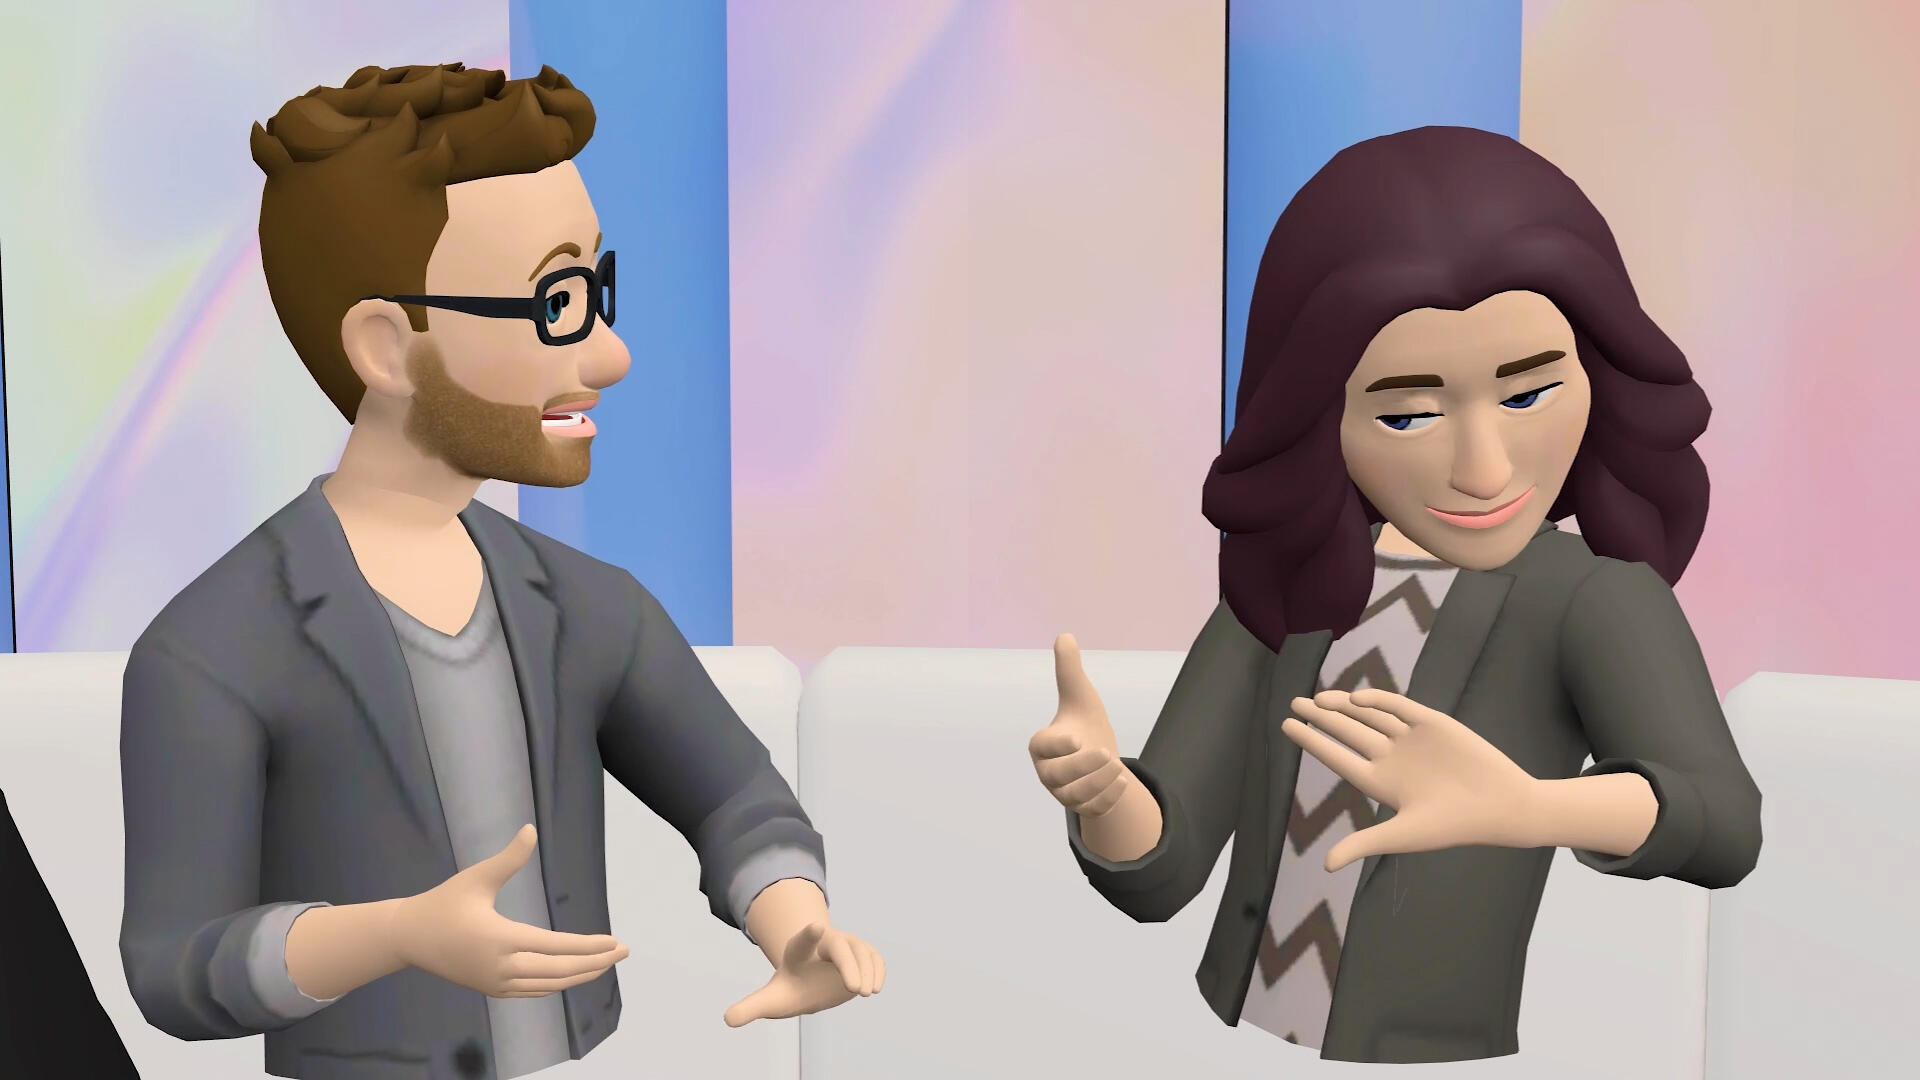 Video: A preview of Facebook's new Oculus VR avatars